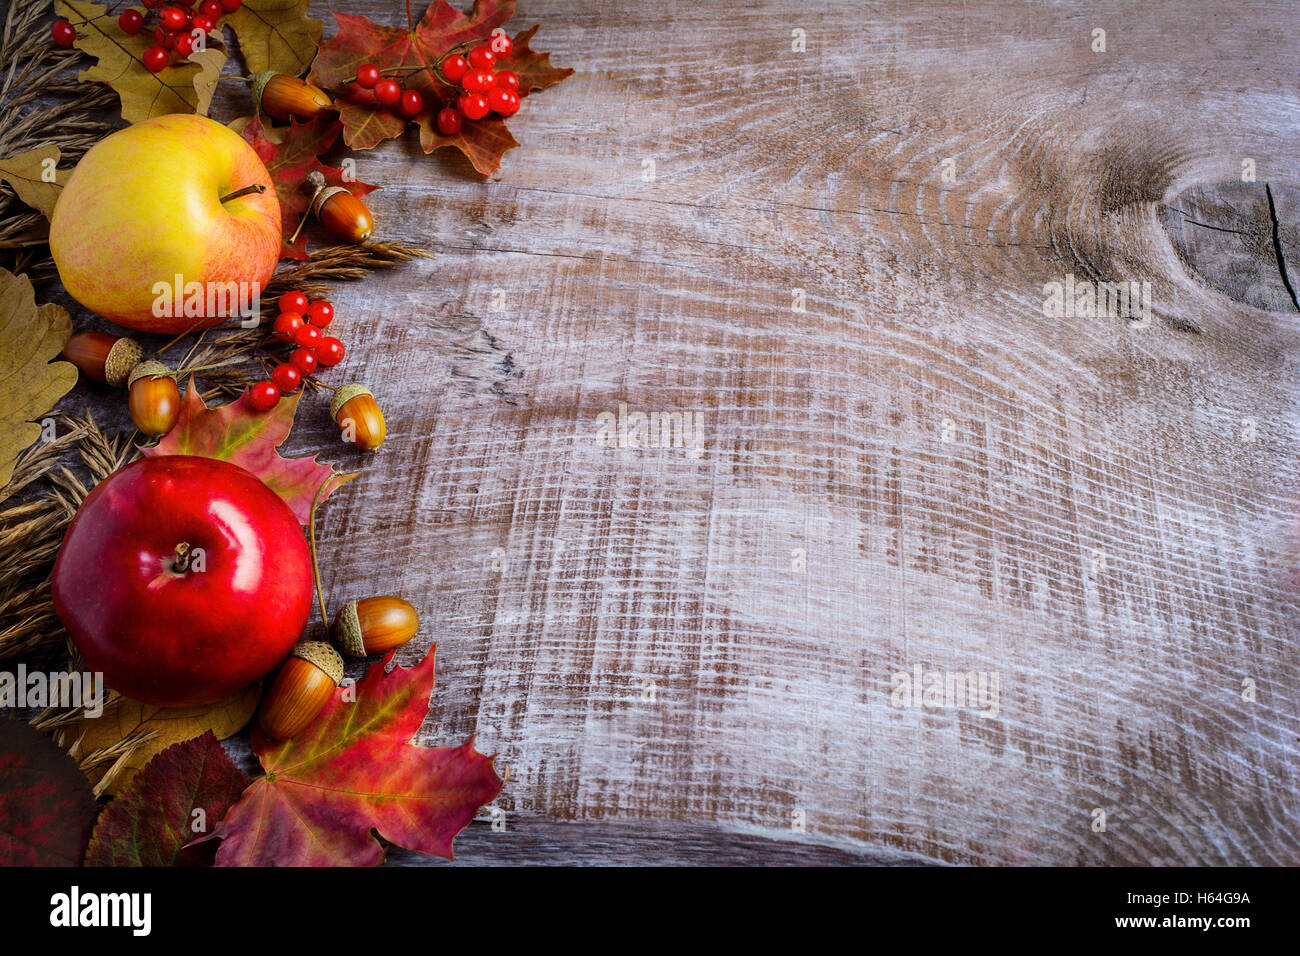 Border Of Apples Red Berries And Fall Leaves On The Rustic Wooden Background Thanksgiving With Seasonal